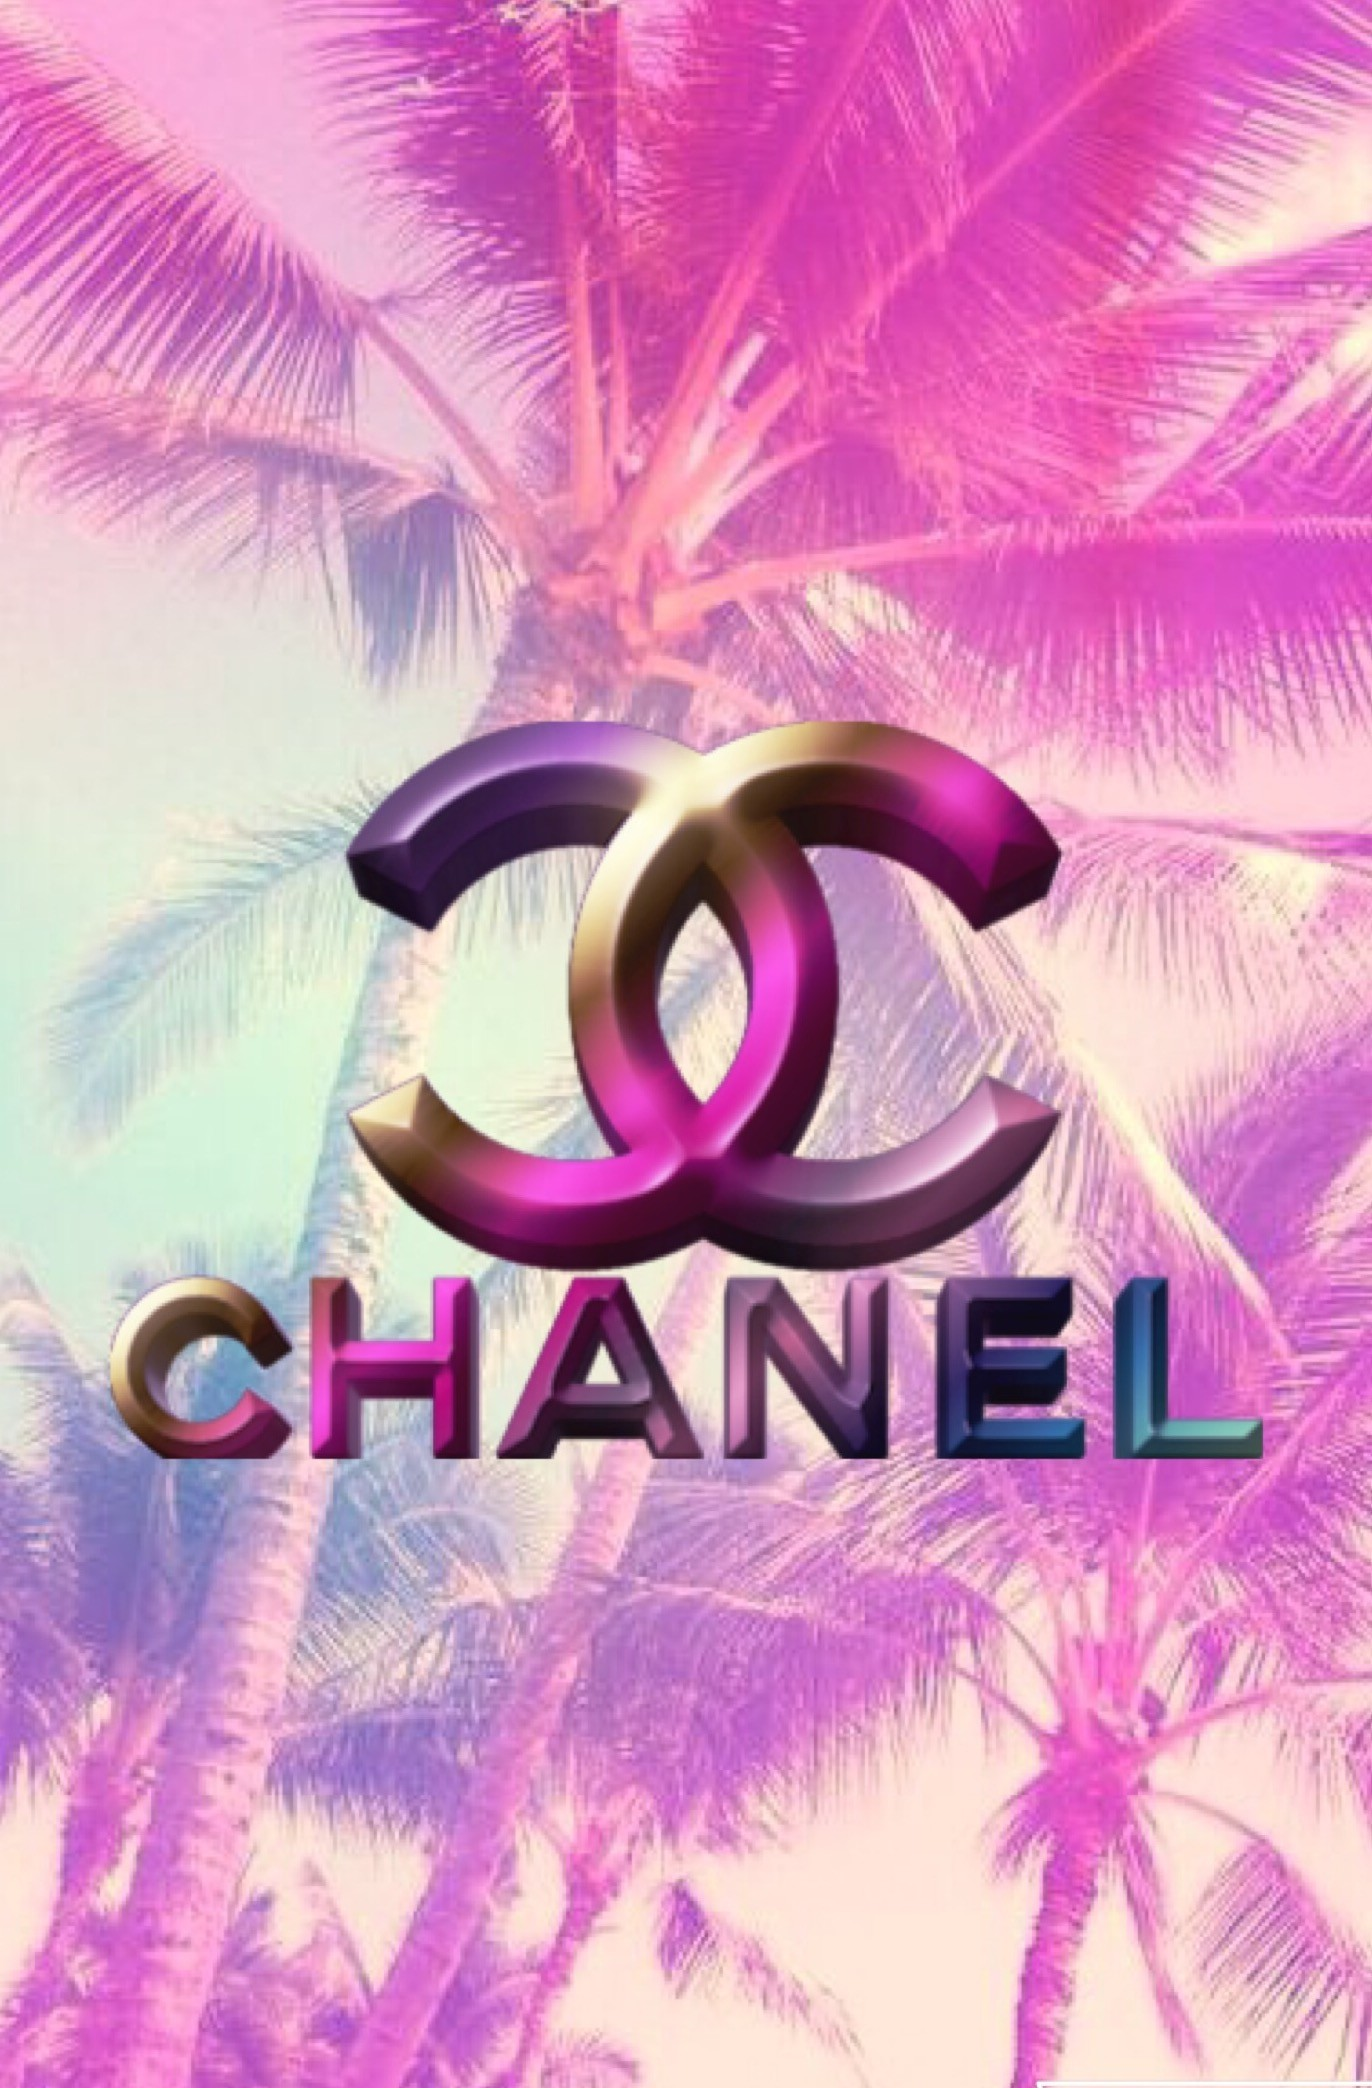 Chanel Wallpapers Hd 70 Images